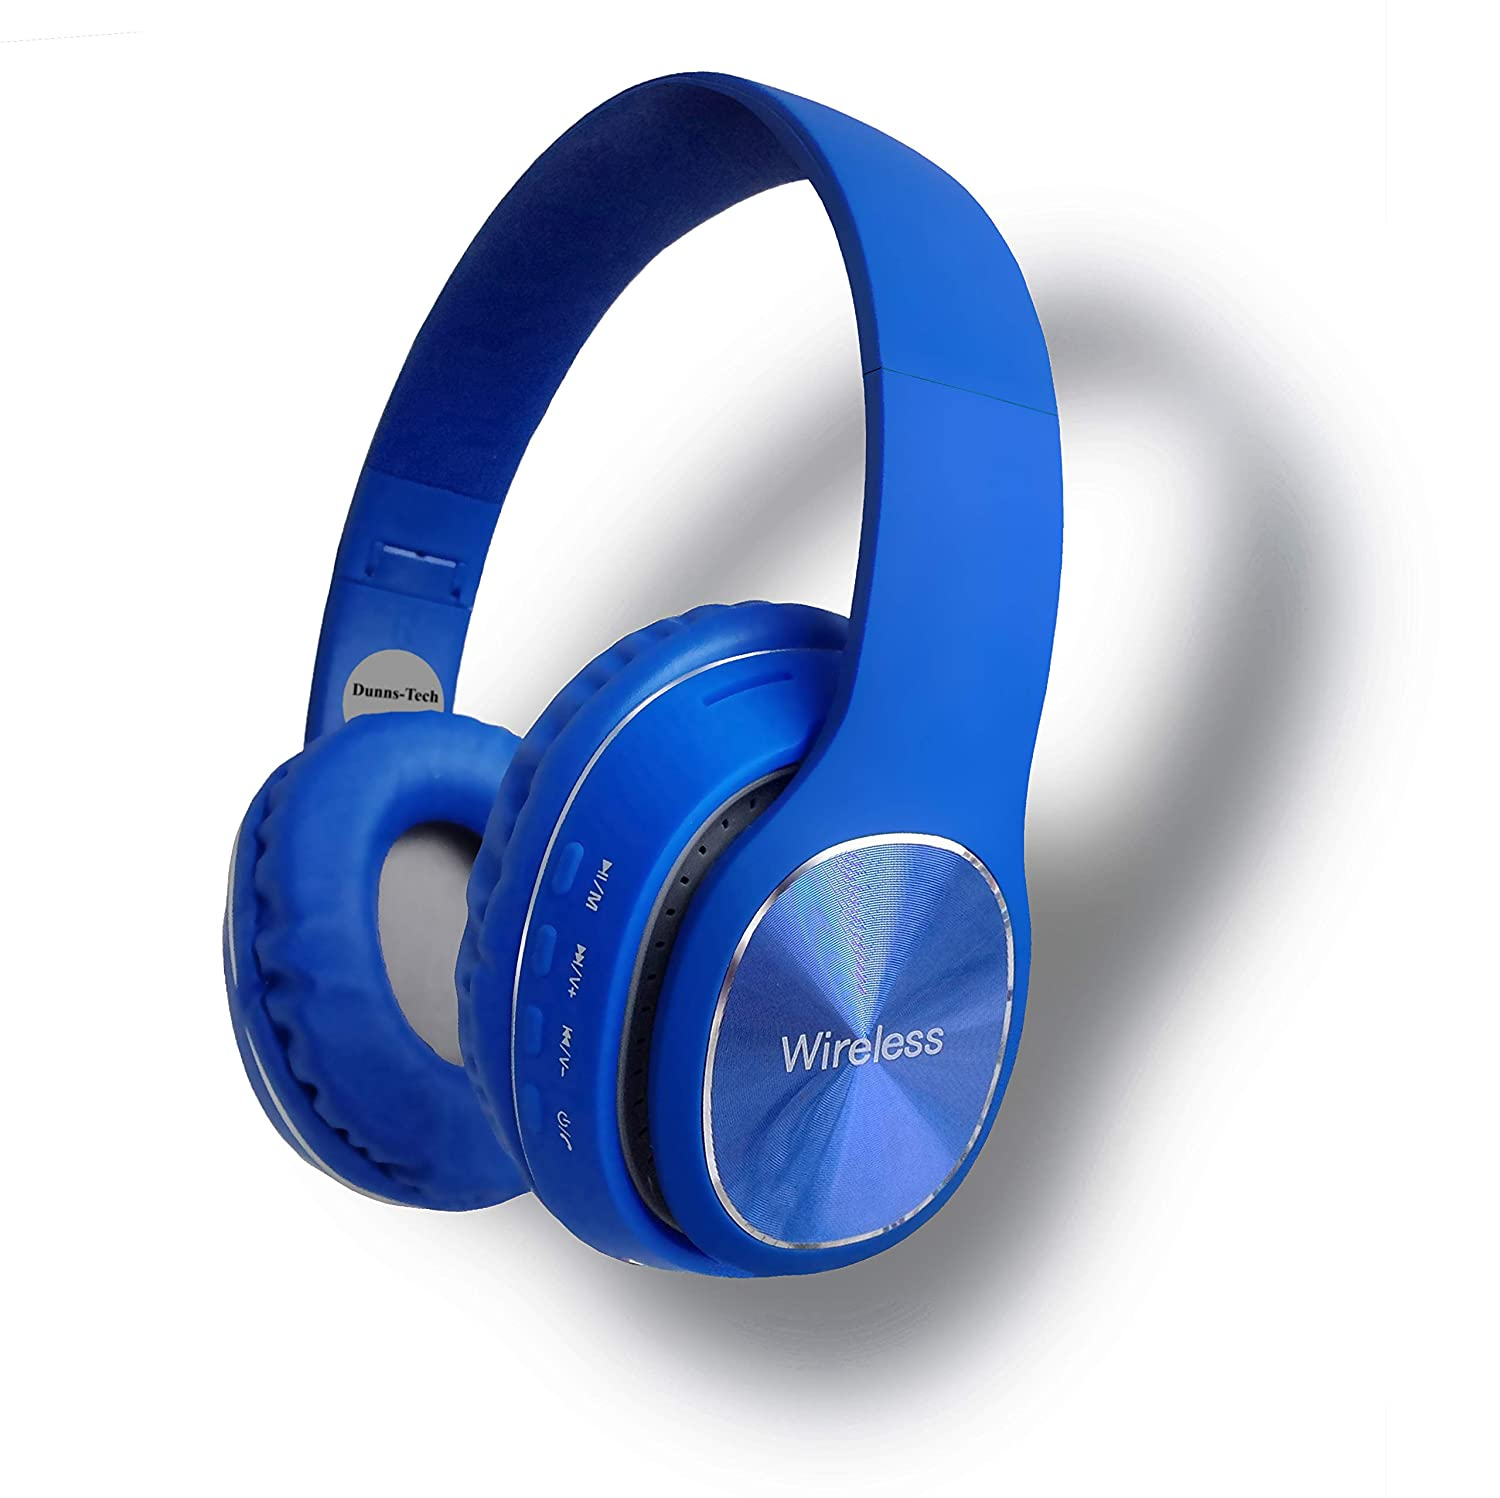 Bluetooth 5.0 Over-Ear Foldable Headphones with FM Radio | 16G Micro-SD Card Slot | 3.5mm Connector (Blue)